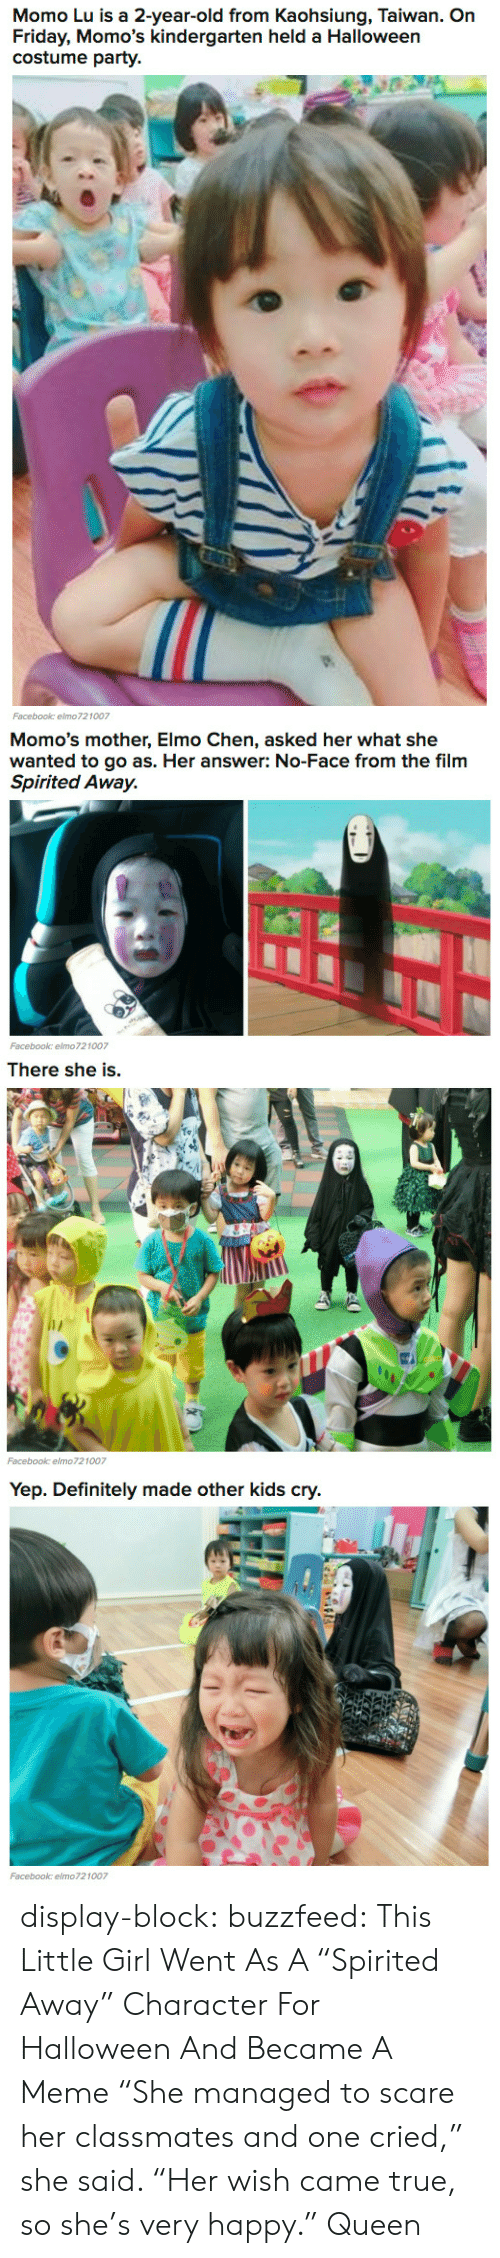 """Definitely, Elmo, and Facebook: Momo Lu is a 2-year-old from Kaohsiung, Taiwan. On  Friday, Momo's kindergarten held a Halloween  costume party.  Facebook: elmo721007   Momo's mother, Elmo Chen, asked her what she  wanted to go as. Her answer: No-Face from the film  Spirited Away.  砡丑  Facebook: elmo721007   There she is.   Yep. Definitely made other kids cry  Facebook: elmo721007 display-block:   buzzfeed:  This Little Girl Went As A """"Spirited Away"""" Character For Halloween And Became A Meme  """"She managed to scare her classmates and one cried,"""" she said. """"Her wish came true, so she's very happy.""""   Queen"""